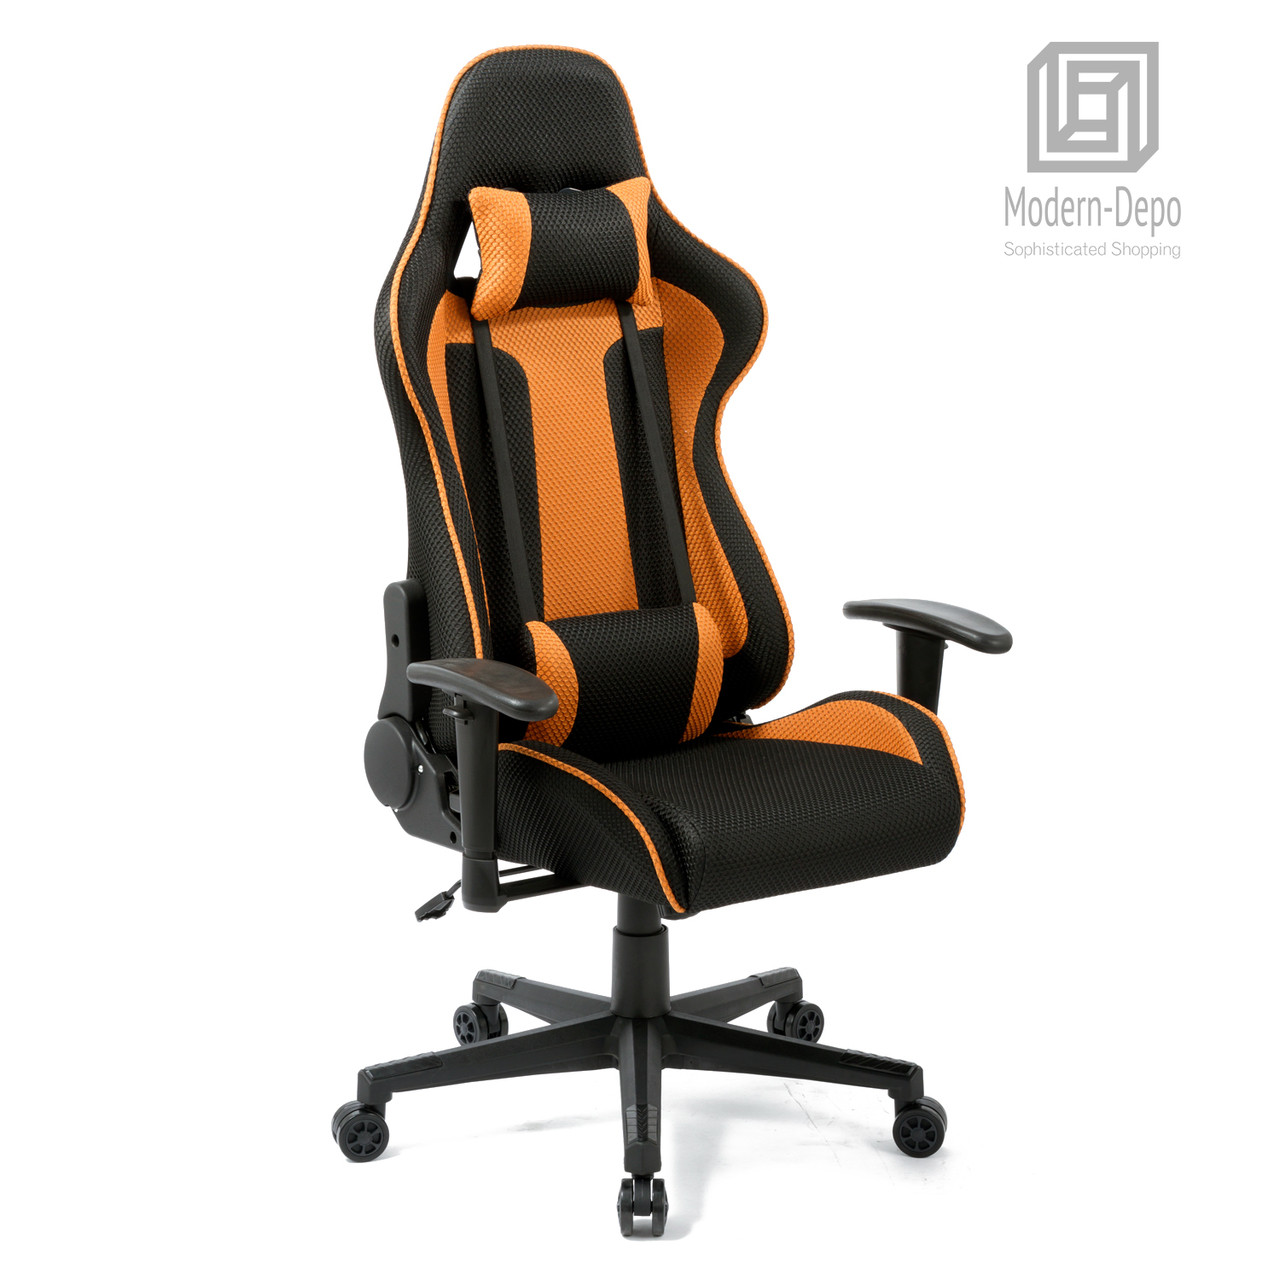 Prime Gaming Chair Racing High Back Mesh Office Chair Ergonomic Backrest And Seat Height Adjustment Computer Desk Chair Executive And Ergonomic Style Home Interior And Landscaping Ologienasavecom